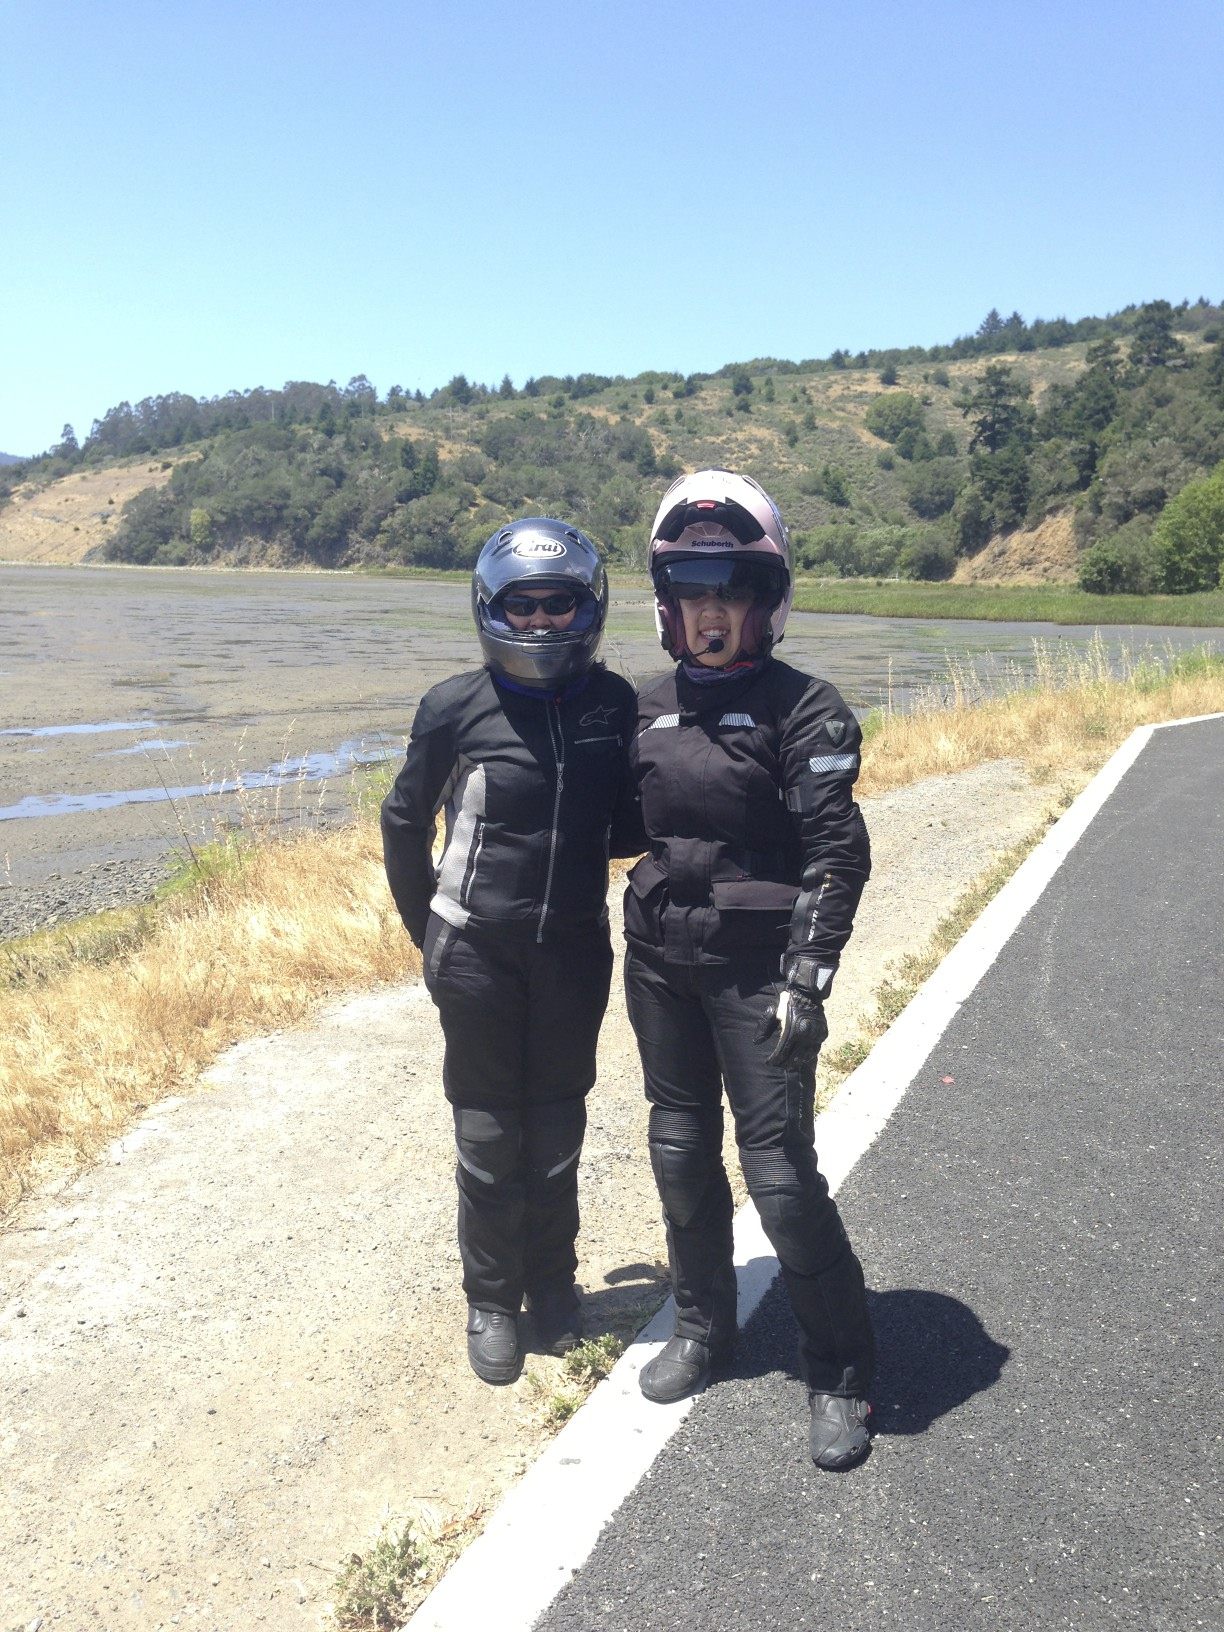 women motorcycle groups san francisco bay area